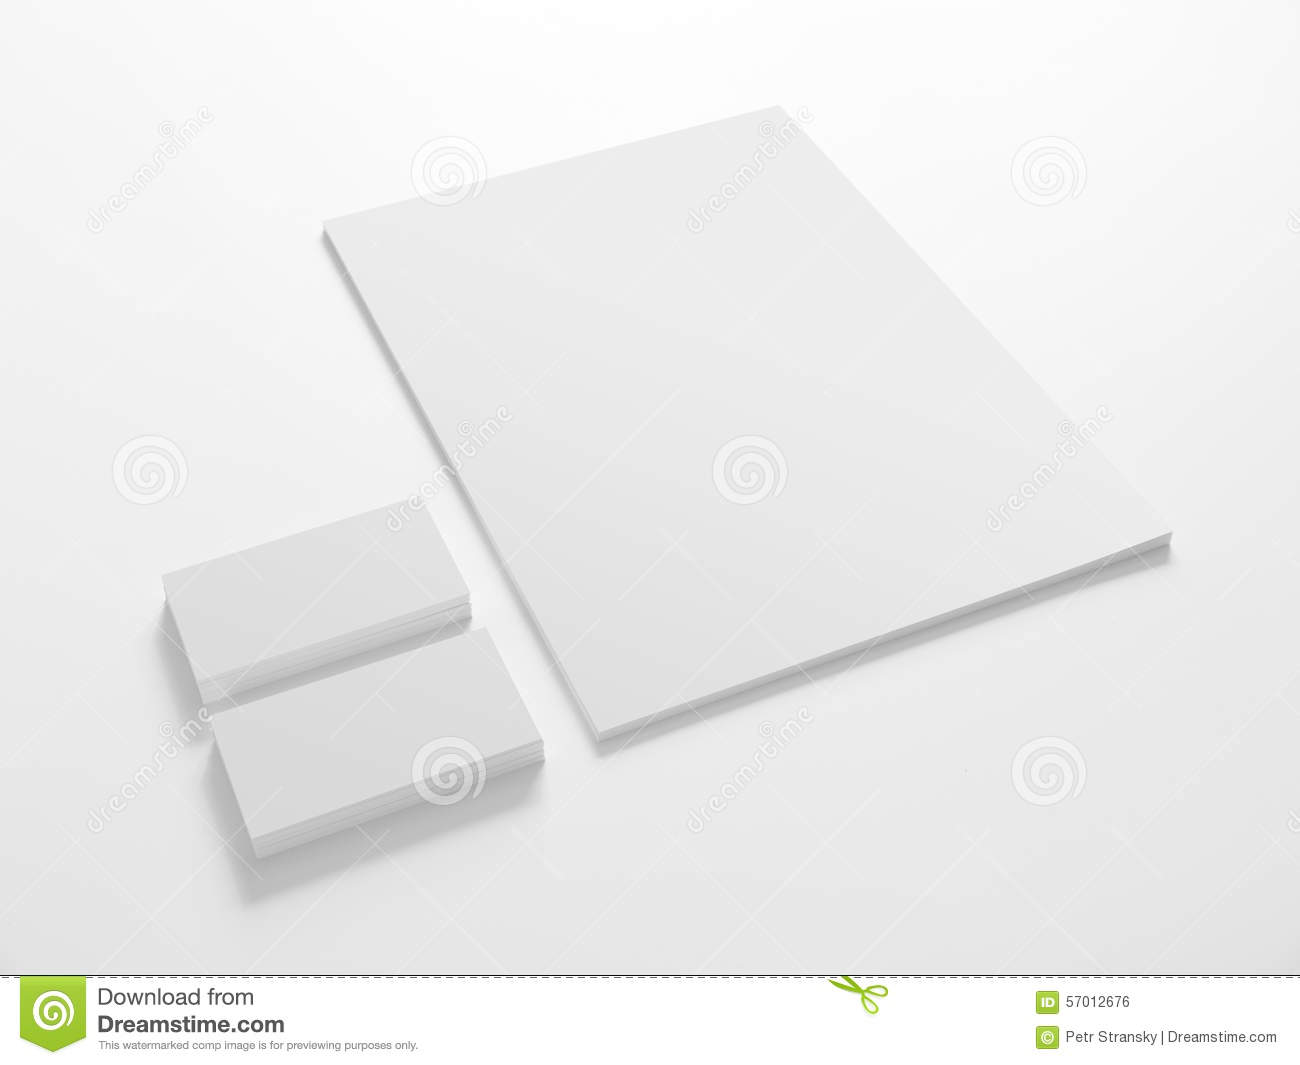 Zapco blank business cards image collections card design and card zapco blank business cards images card design and card template zapco blank business cards choice image reheart Gallery